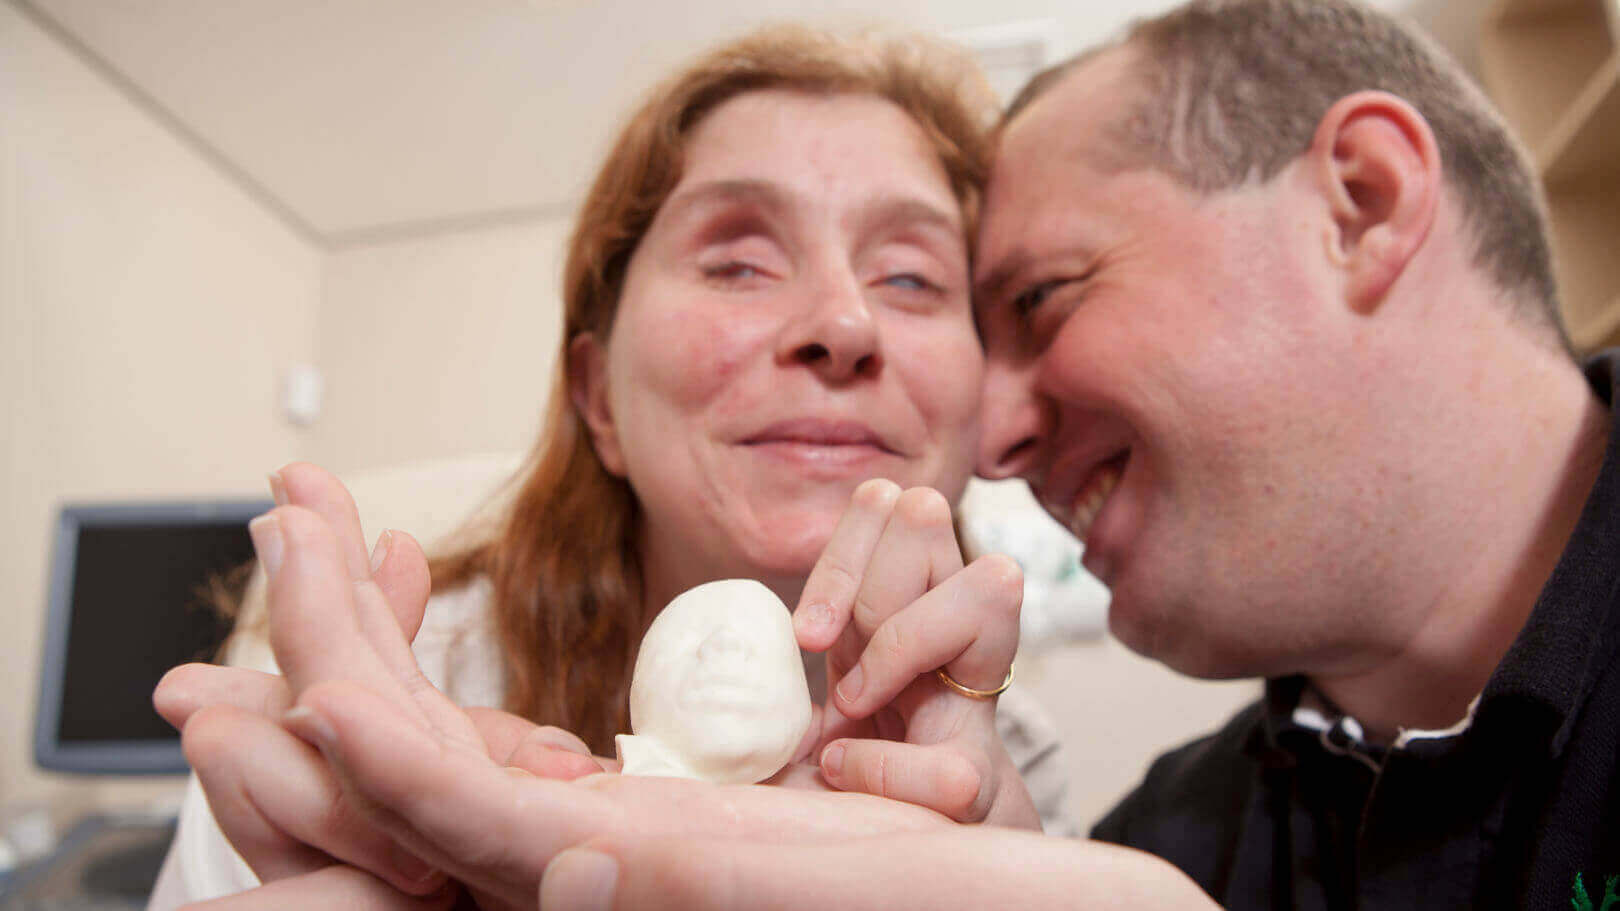 Blind Parents Feel Their Baby's Ultrasound Thanks To 3D Printing | All3DP